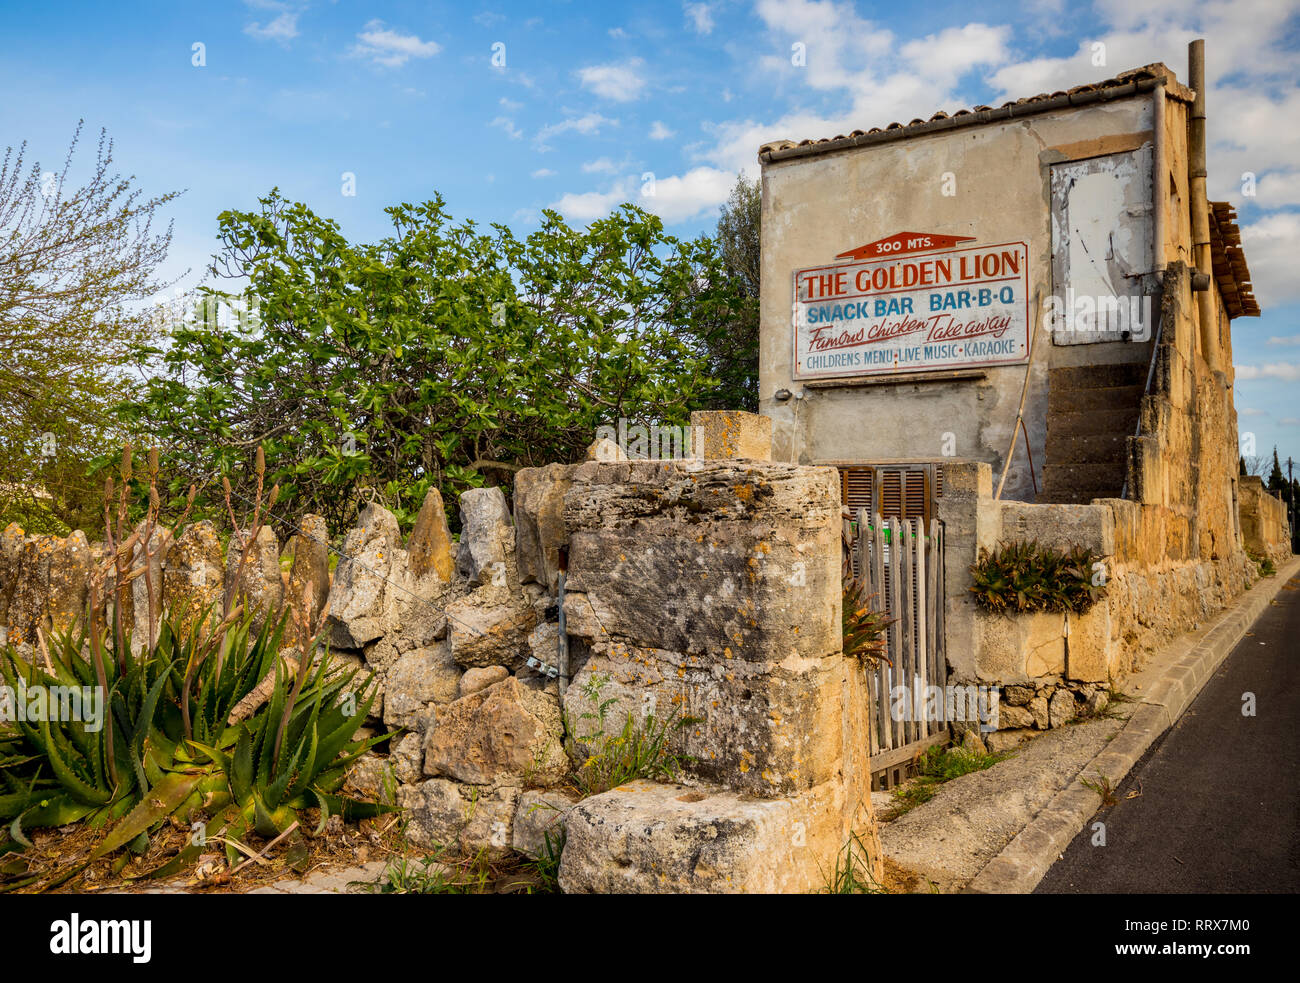 Old stone building advertising The Golden Lion snack bar, Alcudia, Mallorca (Majorca), Balearic Islands, Spain - Stock Image